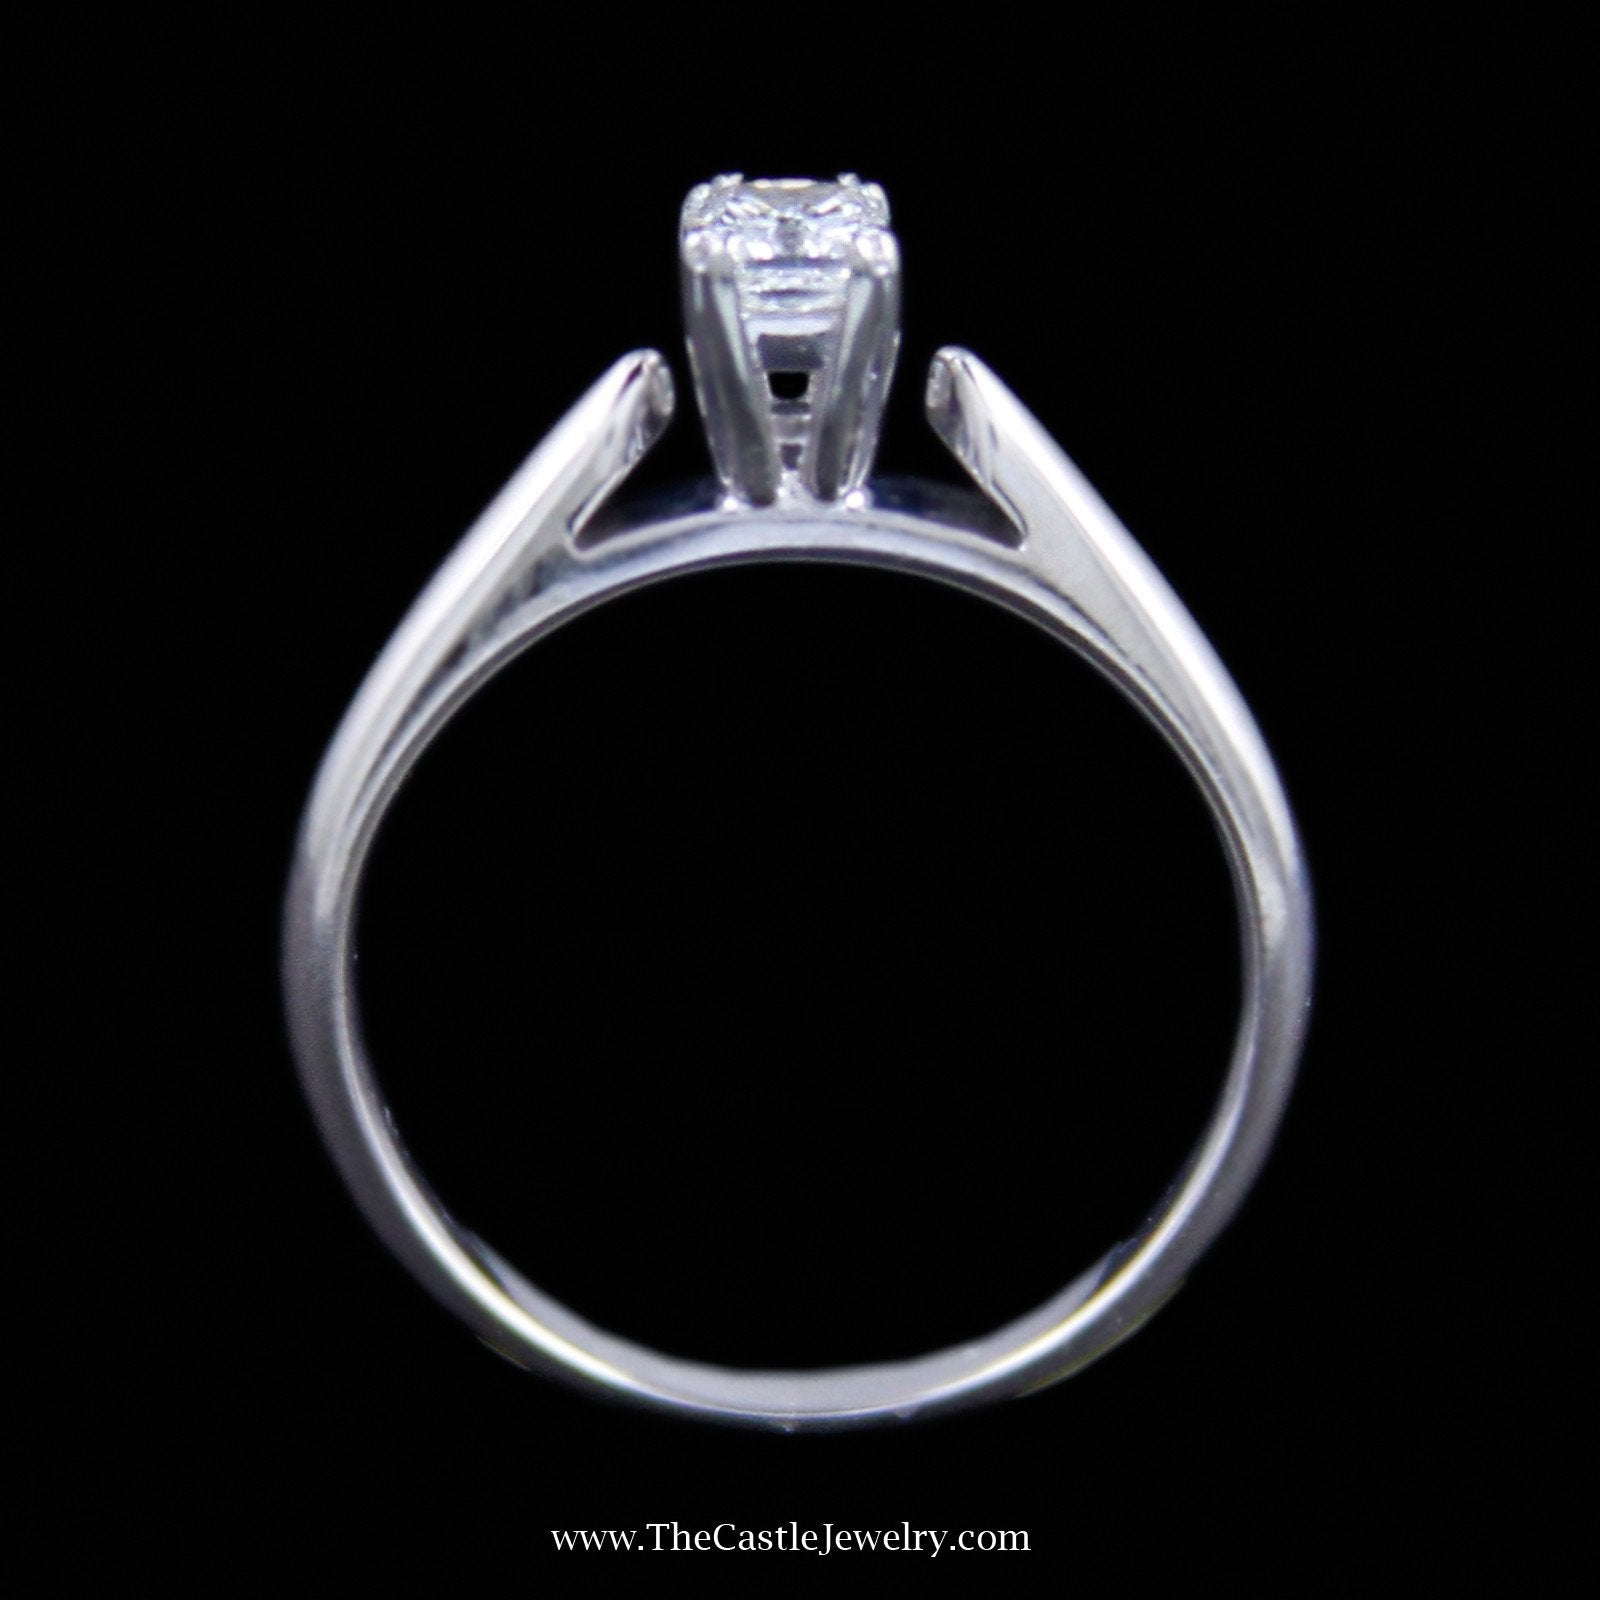 Gorgeous Radiant Cut Diamond Solitaire Engagement Ring in 14K White Gold-1